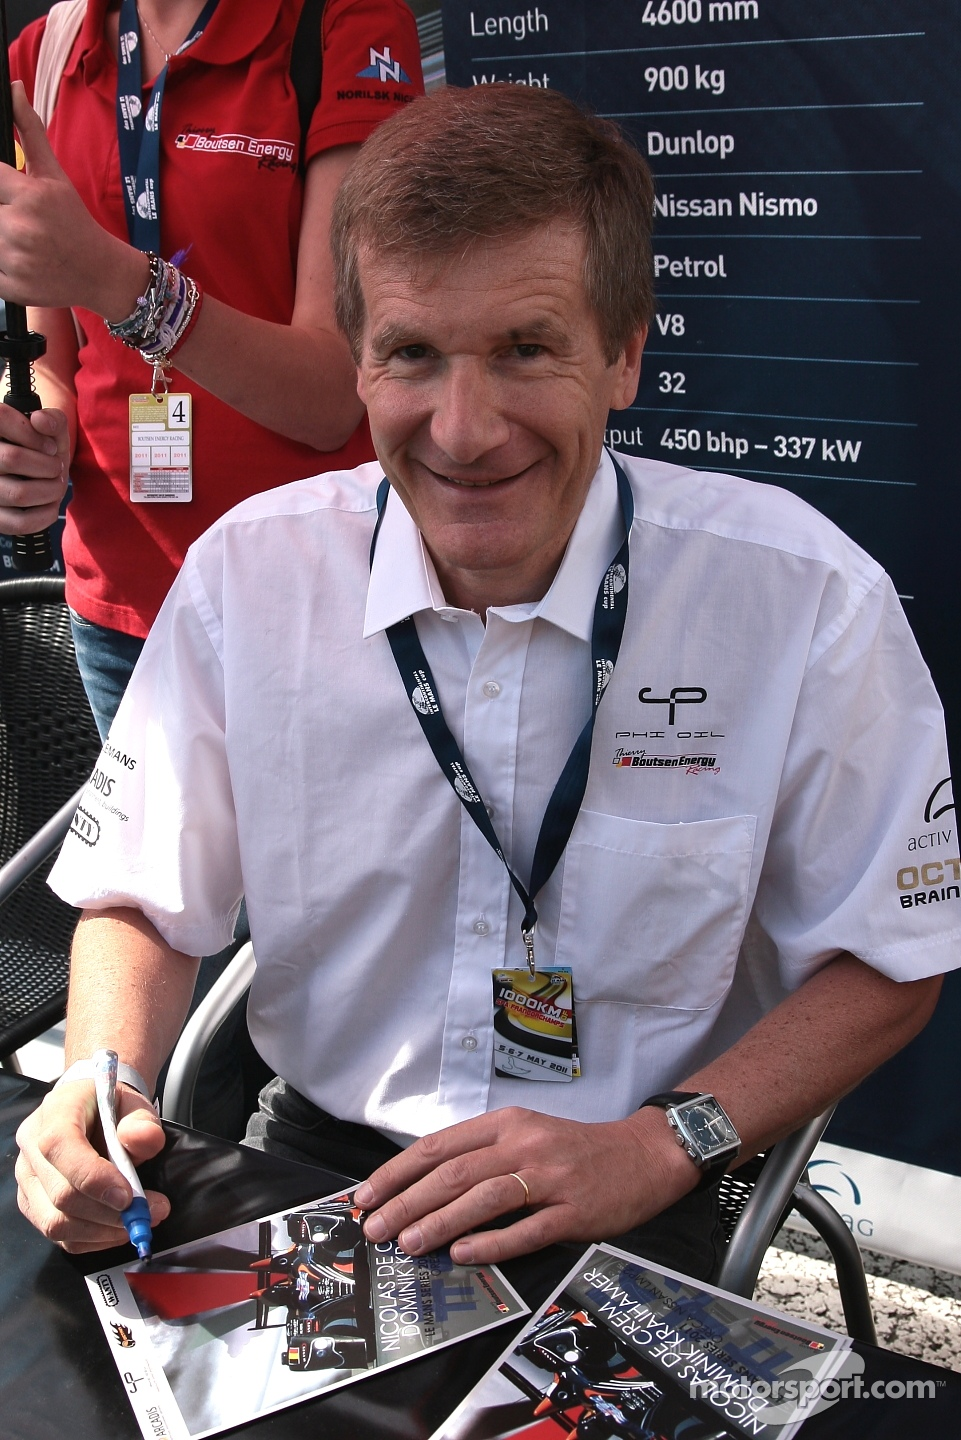 Thierry Boutsen | The Formula 1 Wiki | FANDOM powered by Wikia